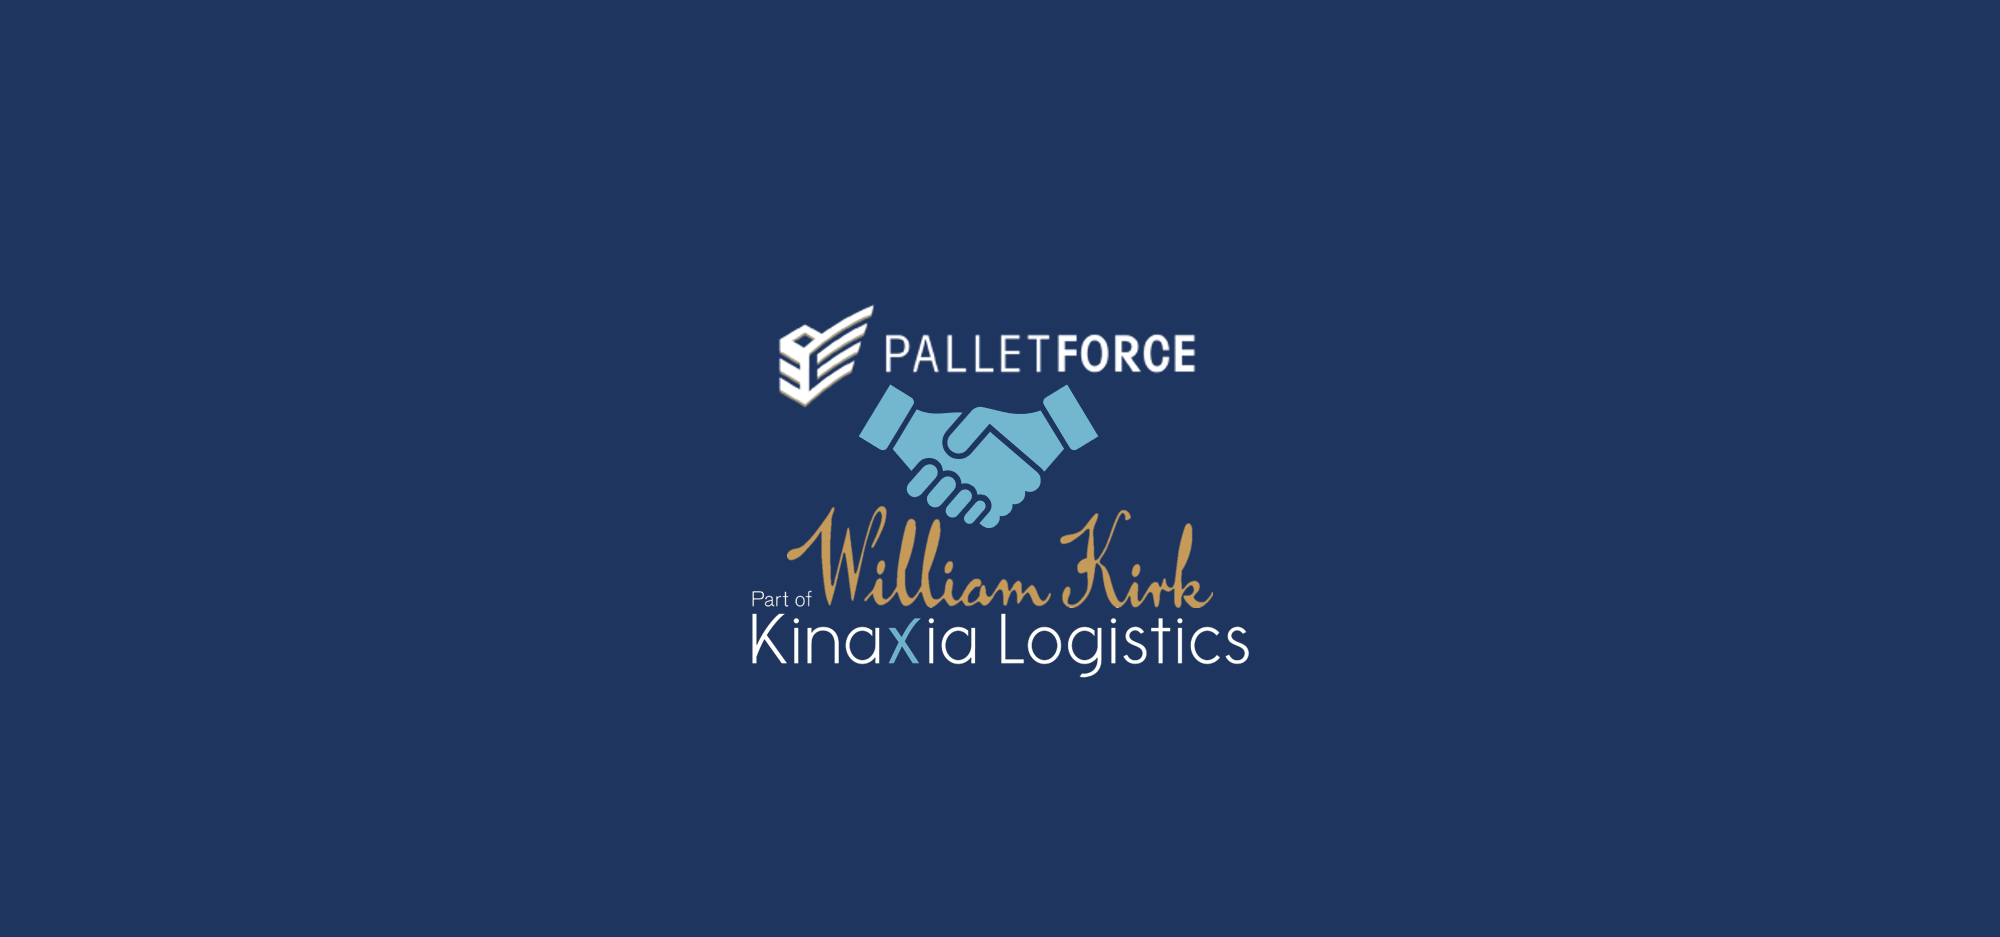 William Kirk completes journey from Palletline to Palletforce